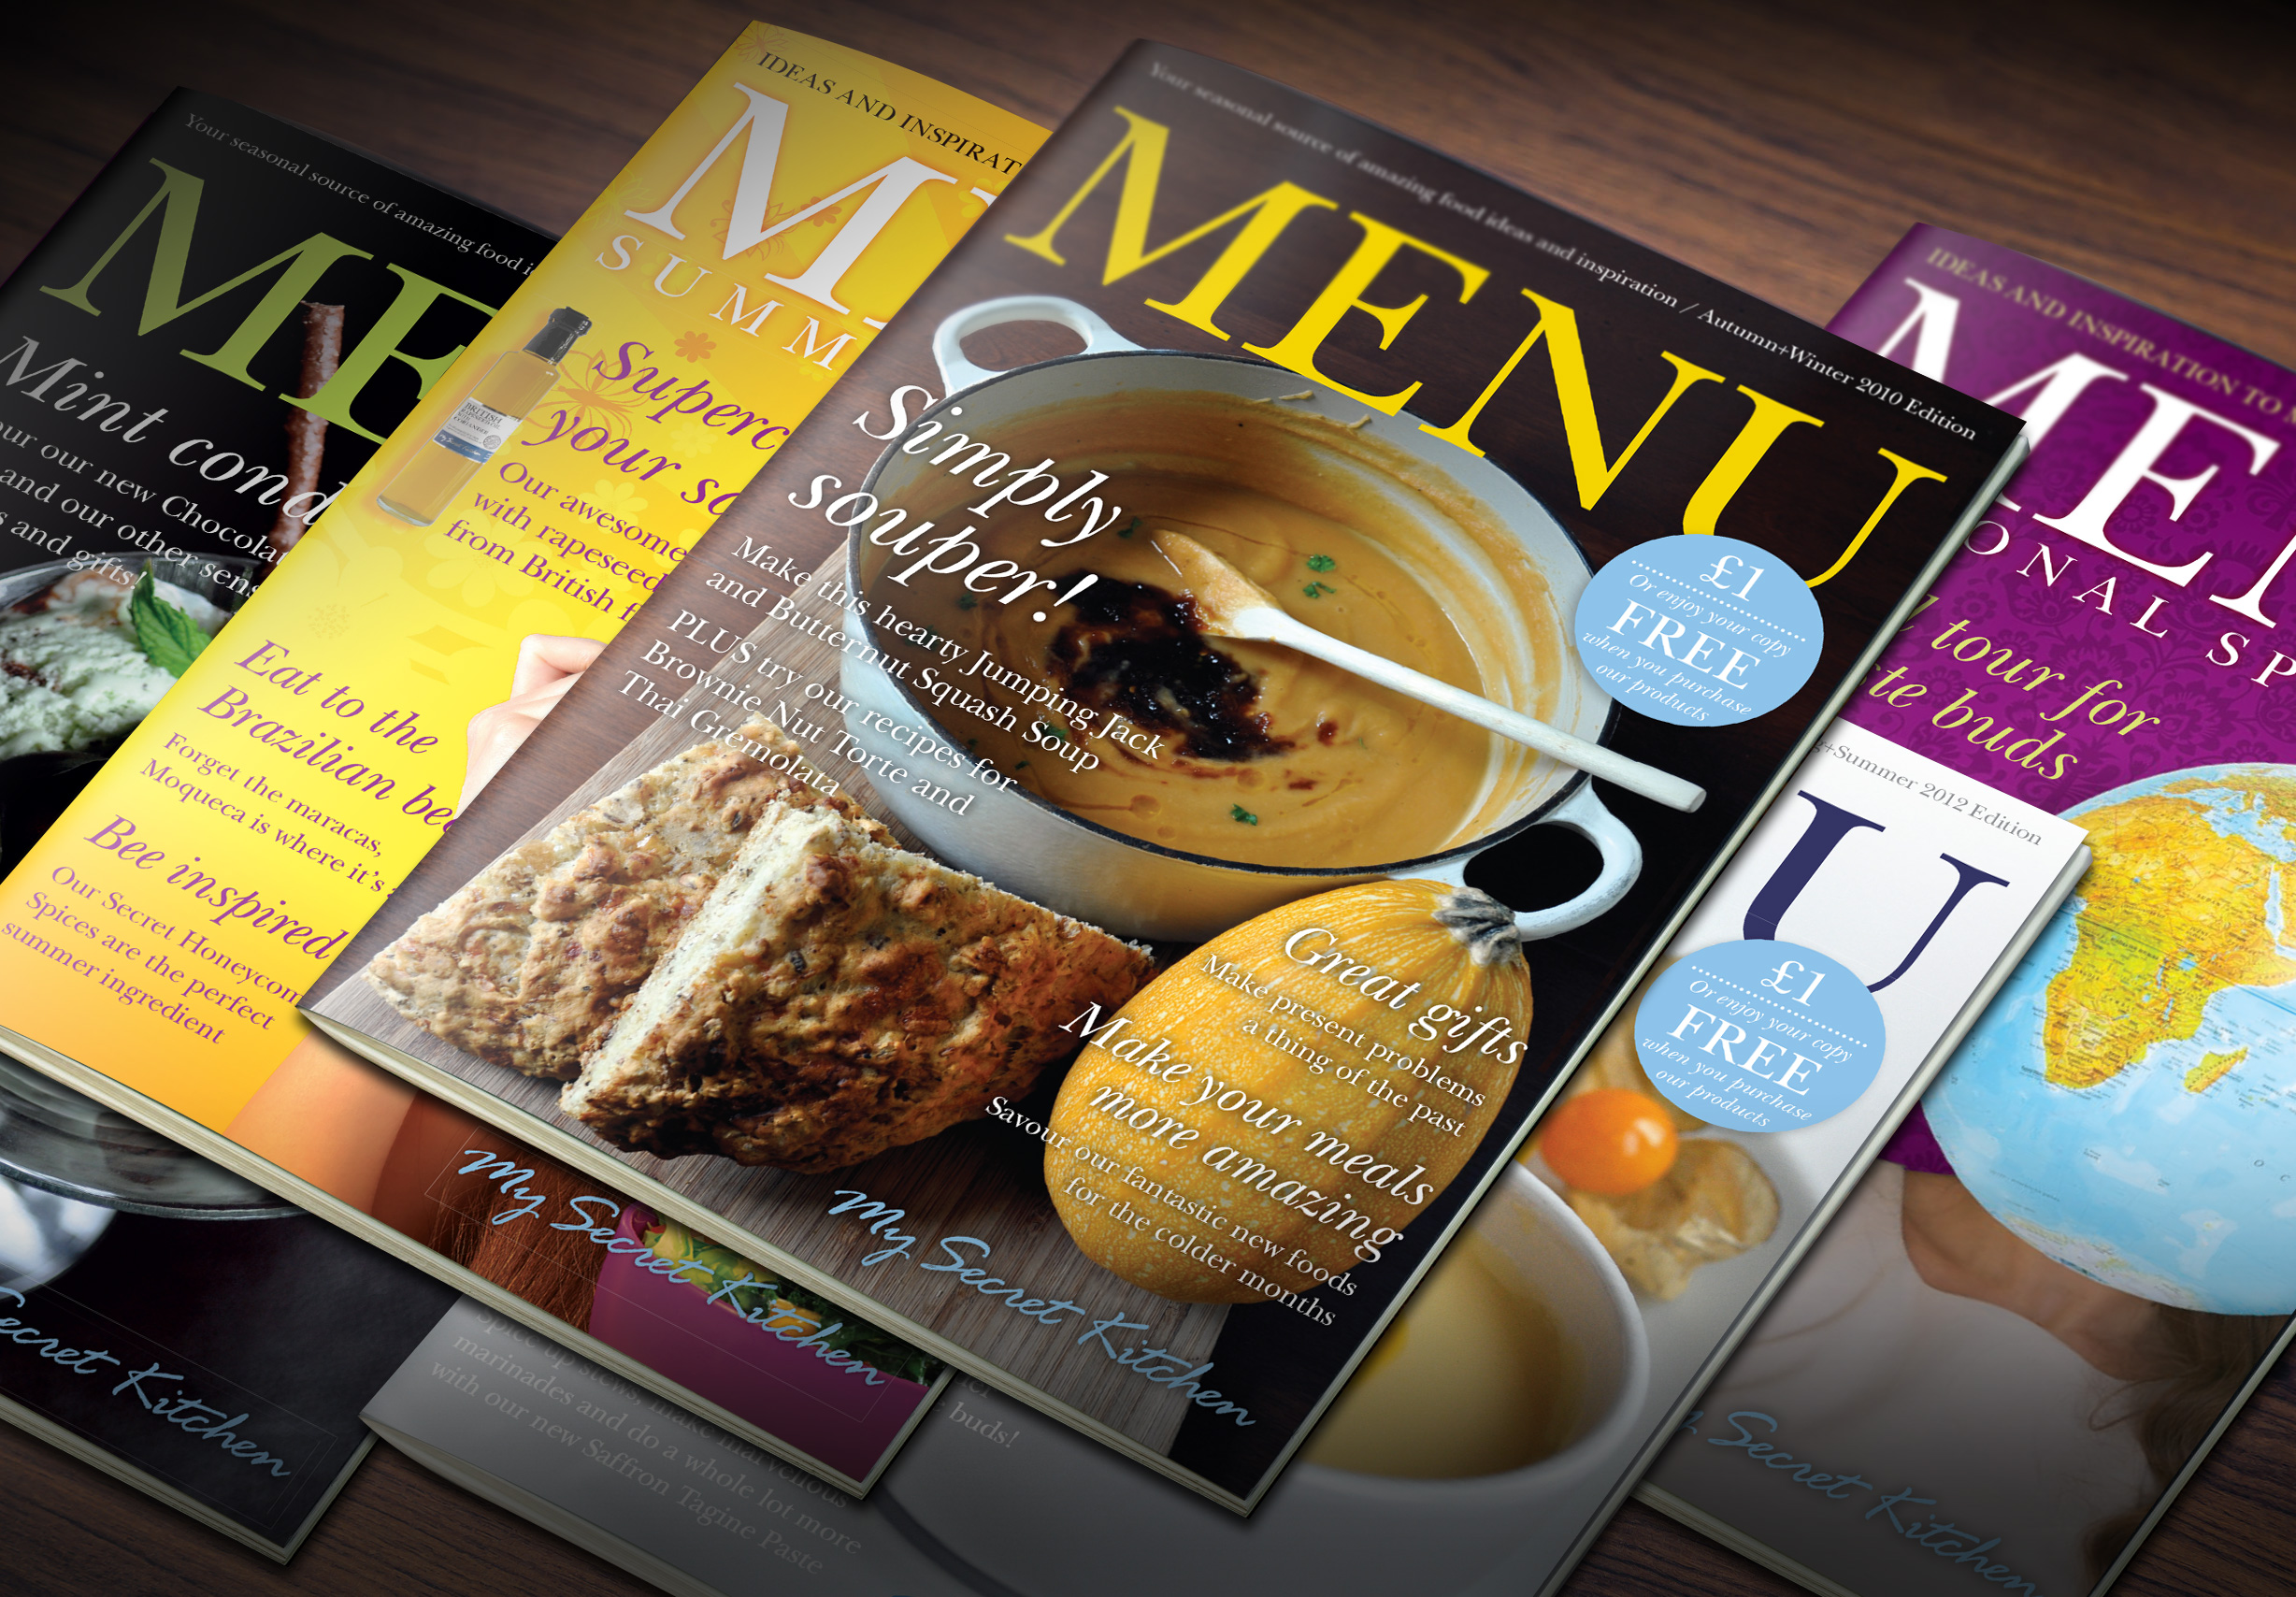 My Secret Kitchen Menu magazine